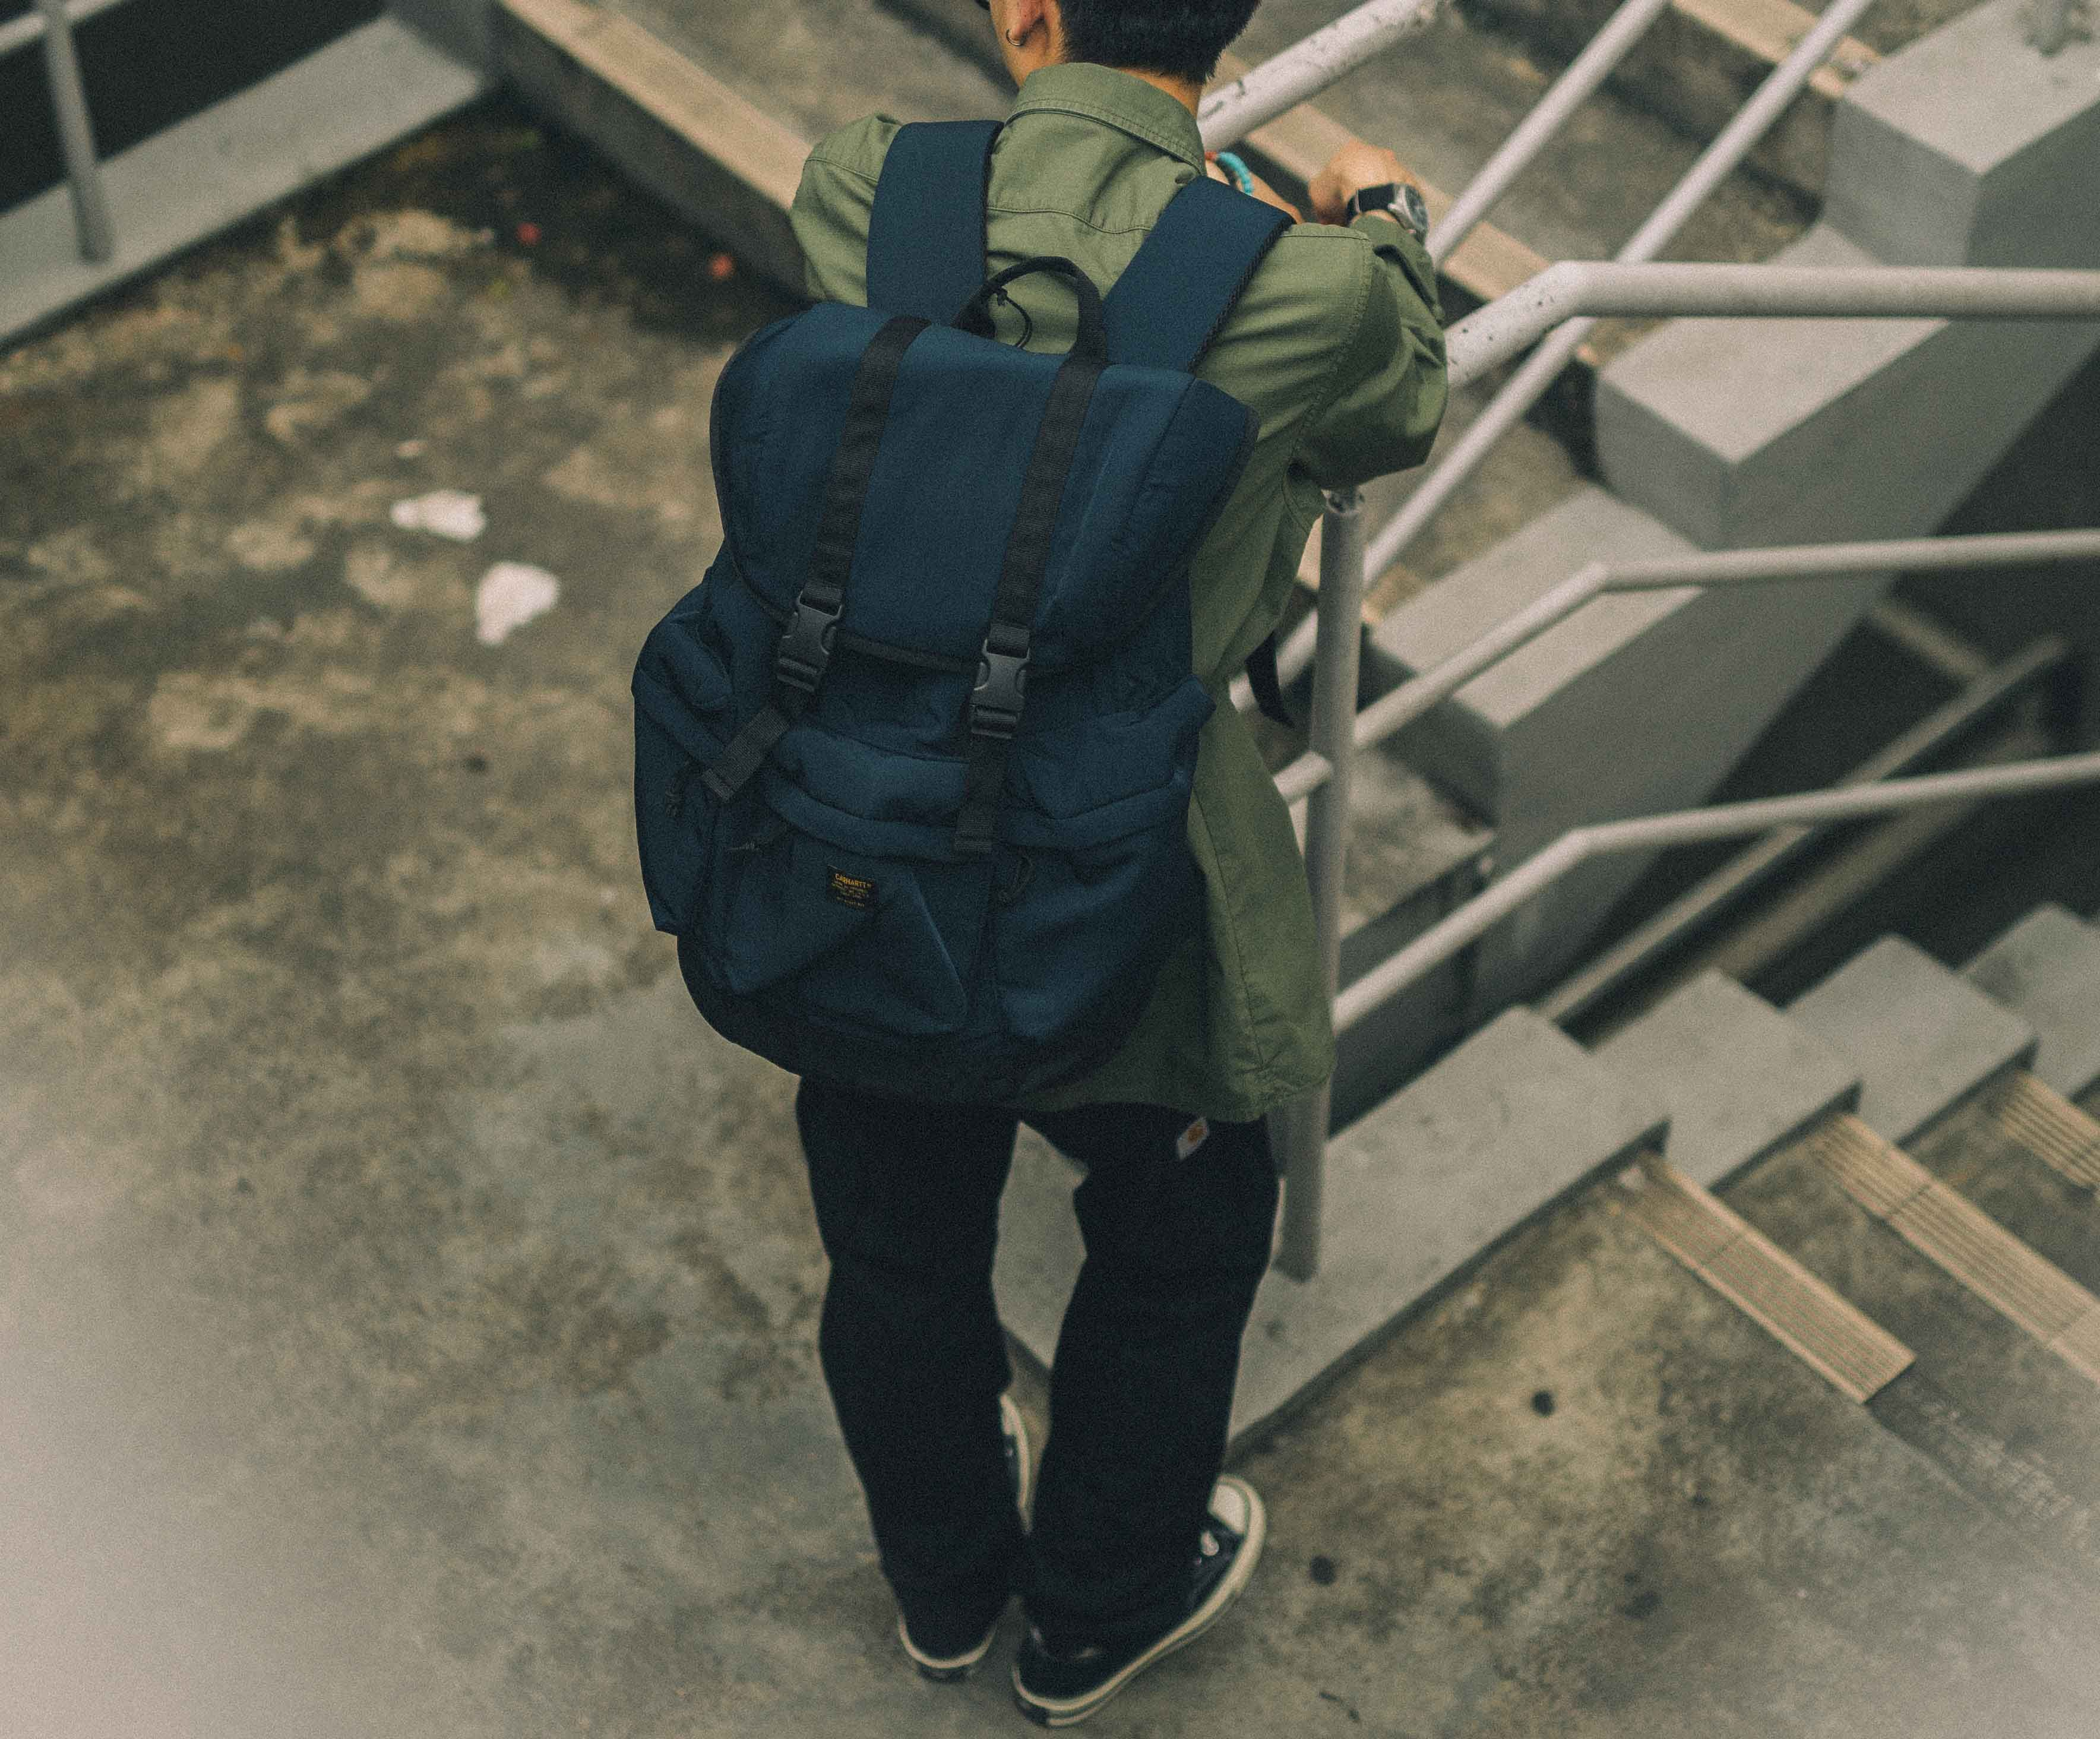 1026d6e010ad Carhartt WIP Fall Winter 17 Collection. Military Backpack in Nylon Twill.